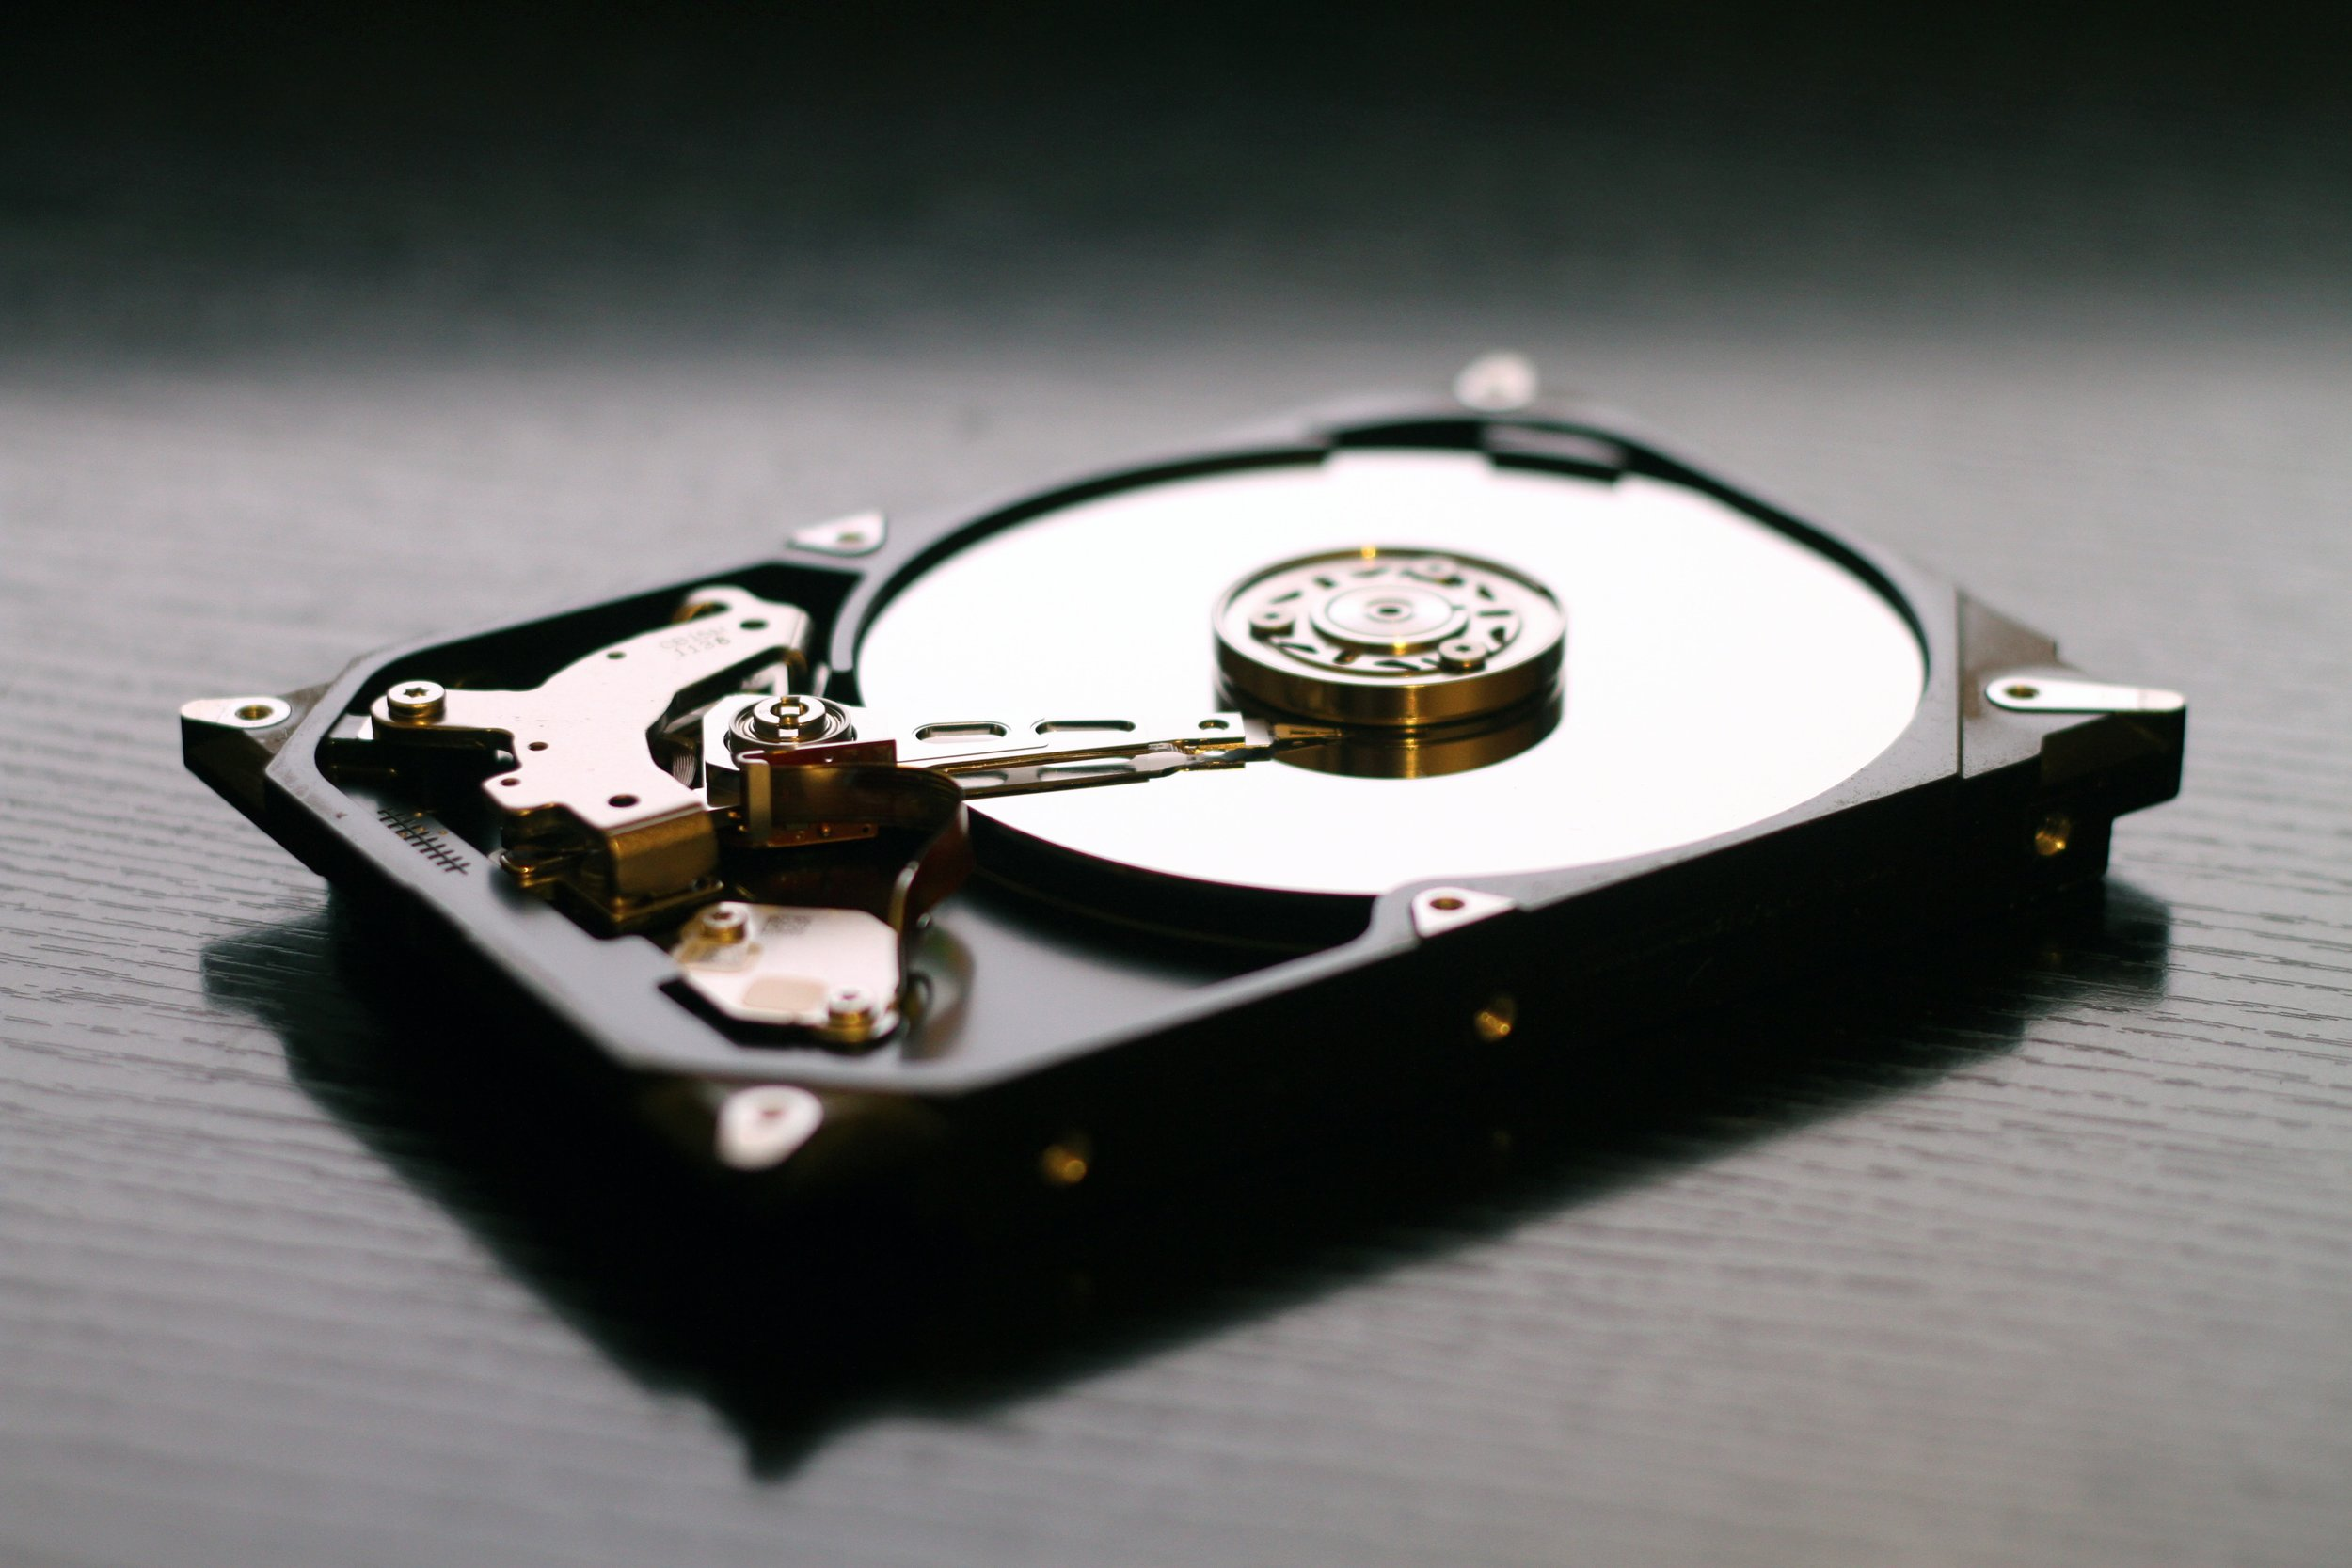 Data Recovery/Transfers - Did the cloud make a break for it with your data in tow? Wanting to get ahead of Murphy's Law and transfer your data before your device crashes? Give us a call!!